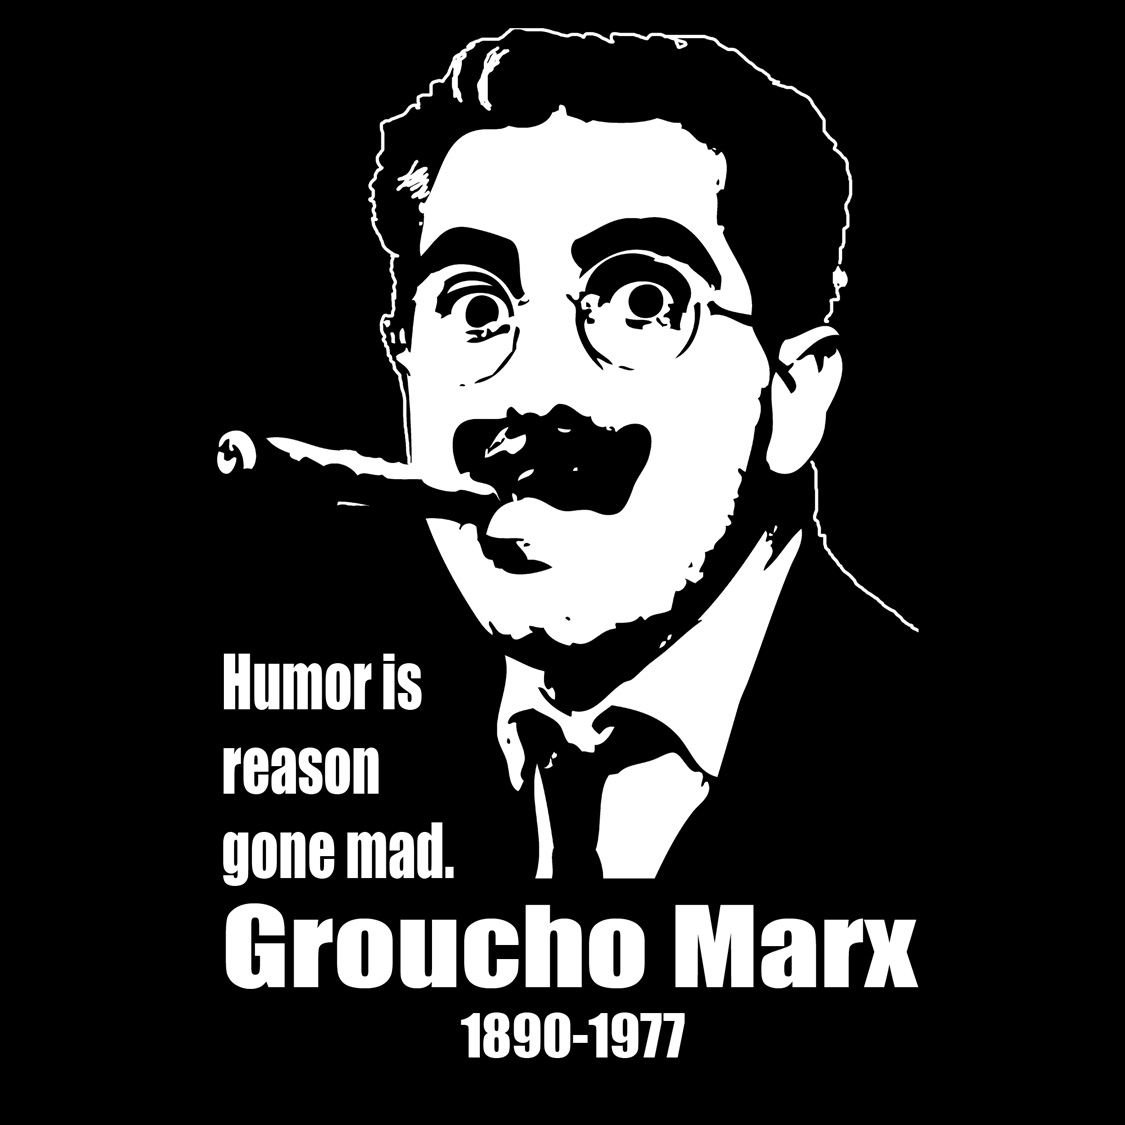 groucho-marx-marriage-quotes-politics-doesnt-make-strange-bedfellows bet-at-home.com und revoluza - revoluza online business ...